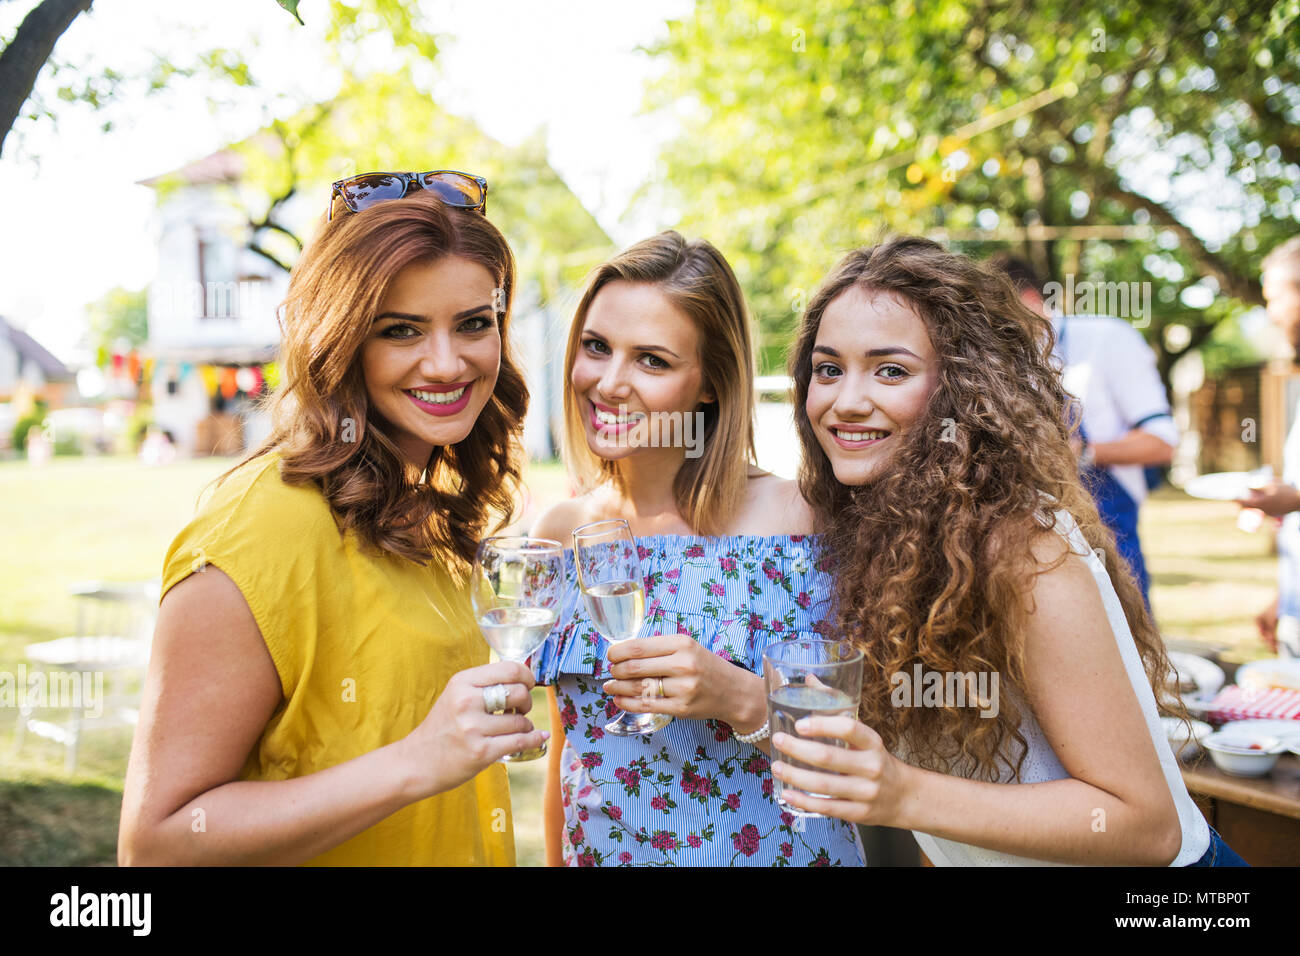 Portrait of three women on a family celebration or a barbecue party outside in the backyard. - Stock Image